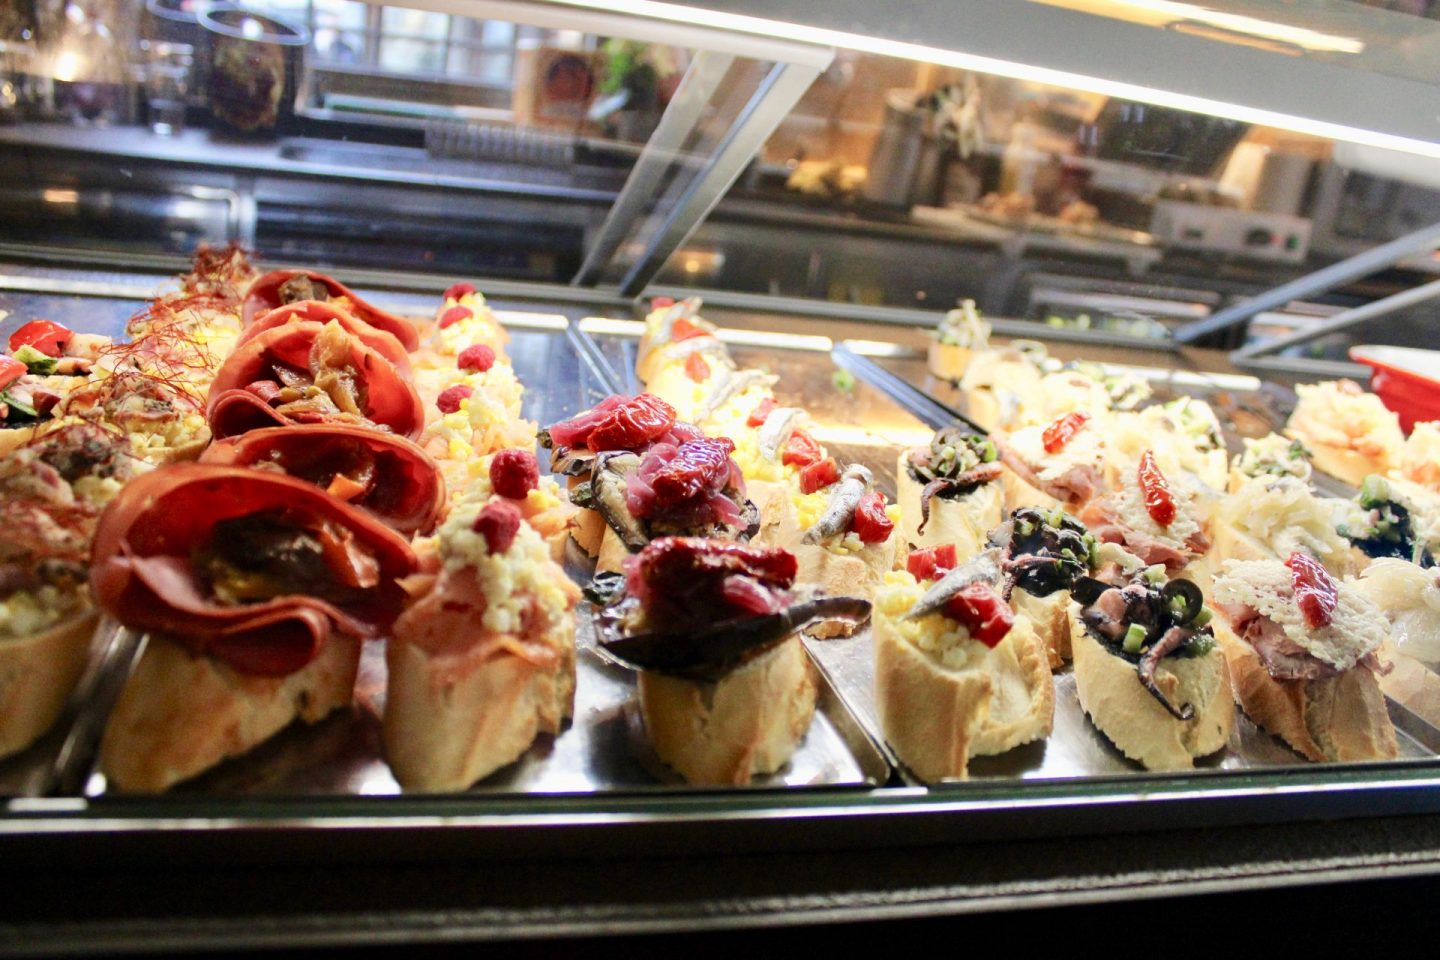 best cicchetti in Venice: a cicchetti bar with a wide range of food displayed behind a glass counter close up